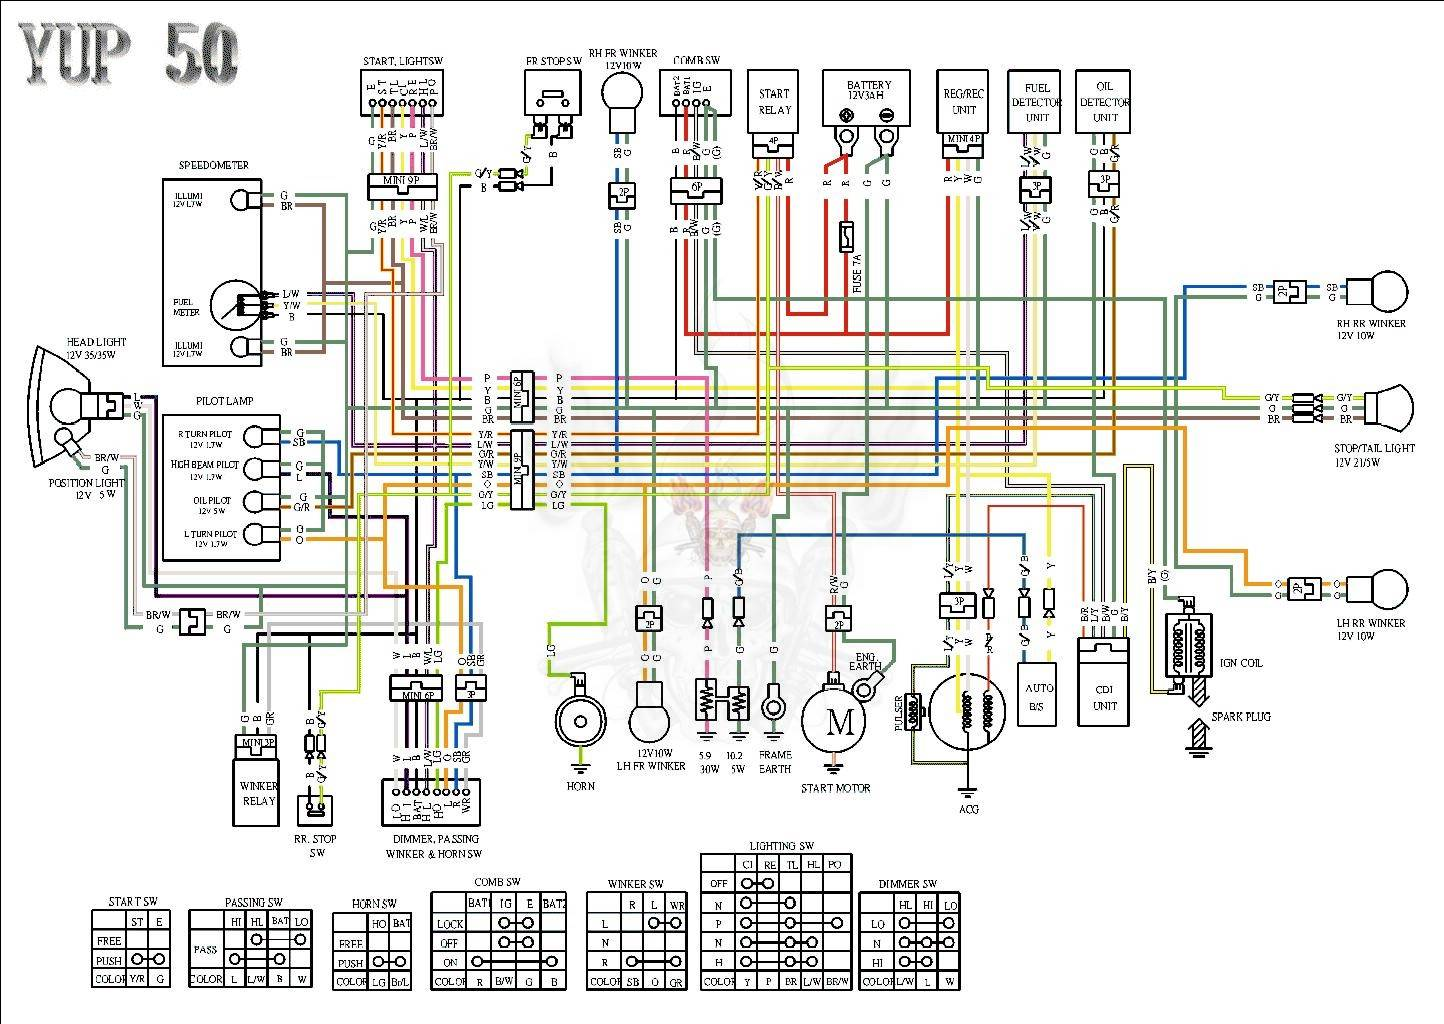 10_1267441688 Xs Wiring Diagram on